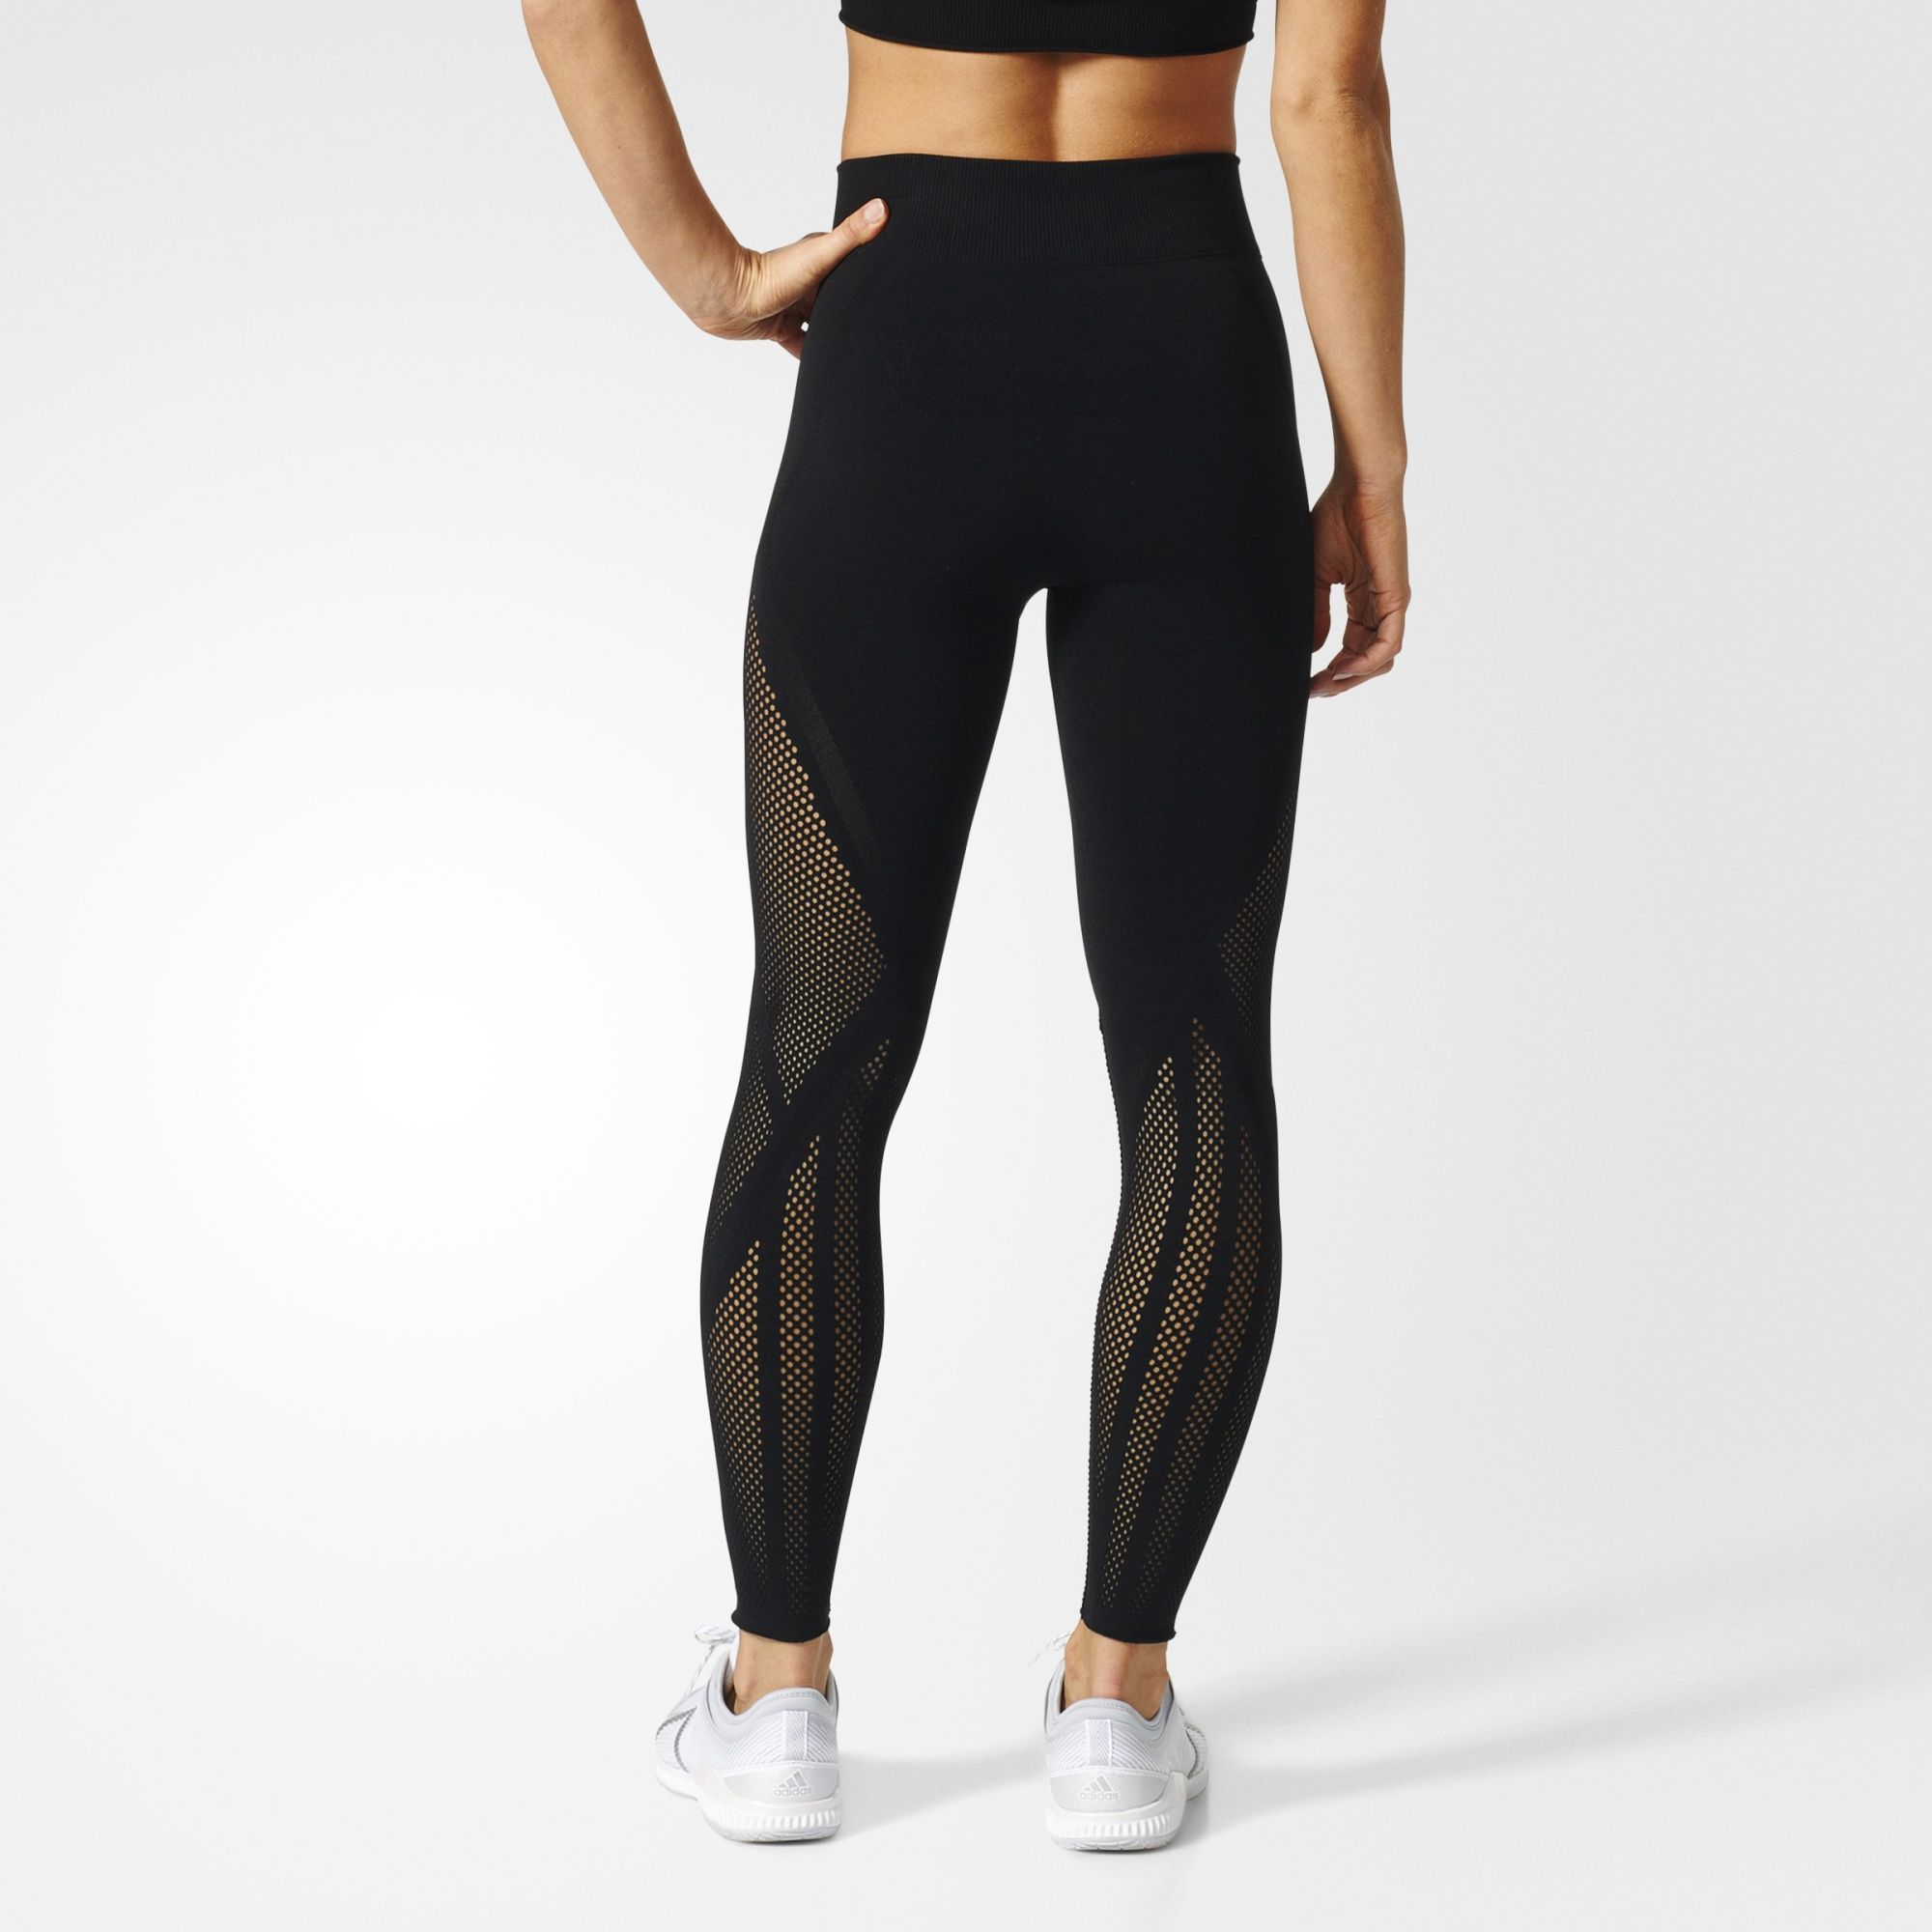 f51865d5eb2dbd Warp Knit Tights | GYM CLOTHES | Tights, Adidas, Black tights